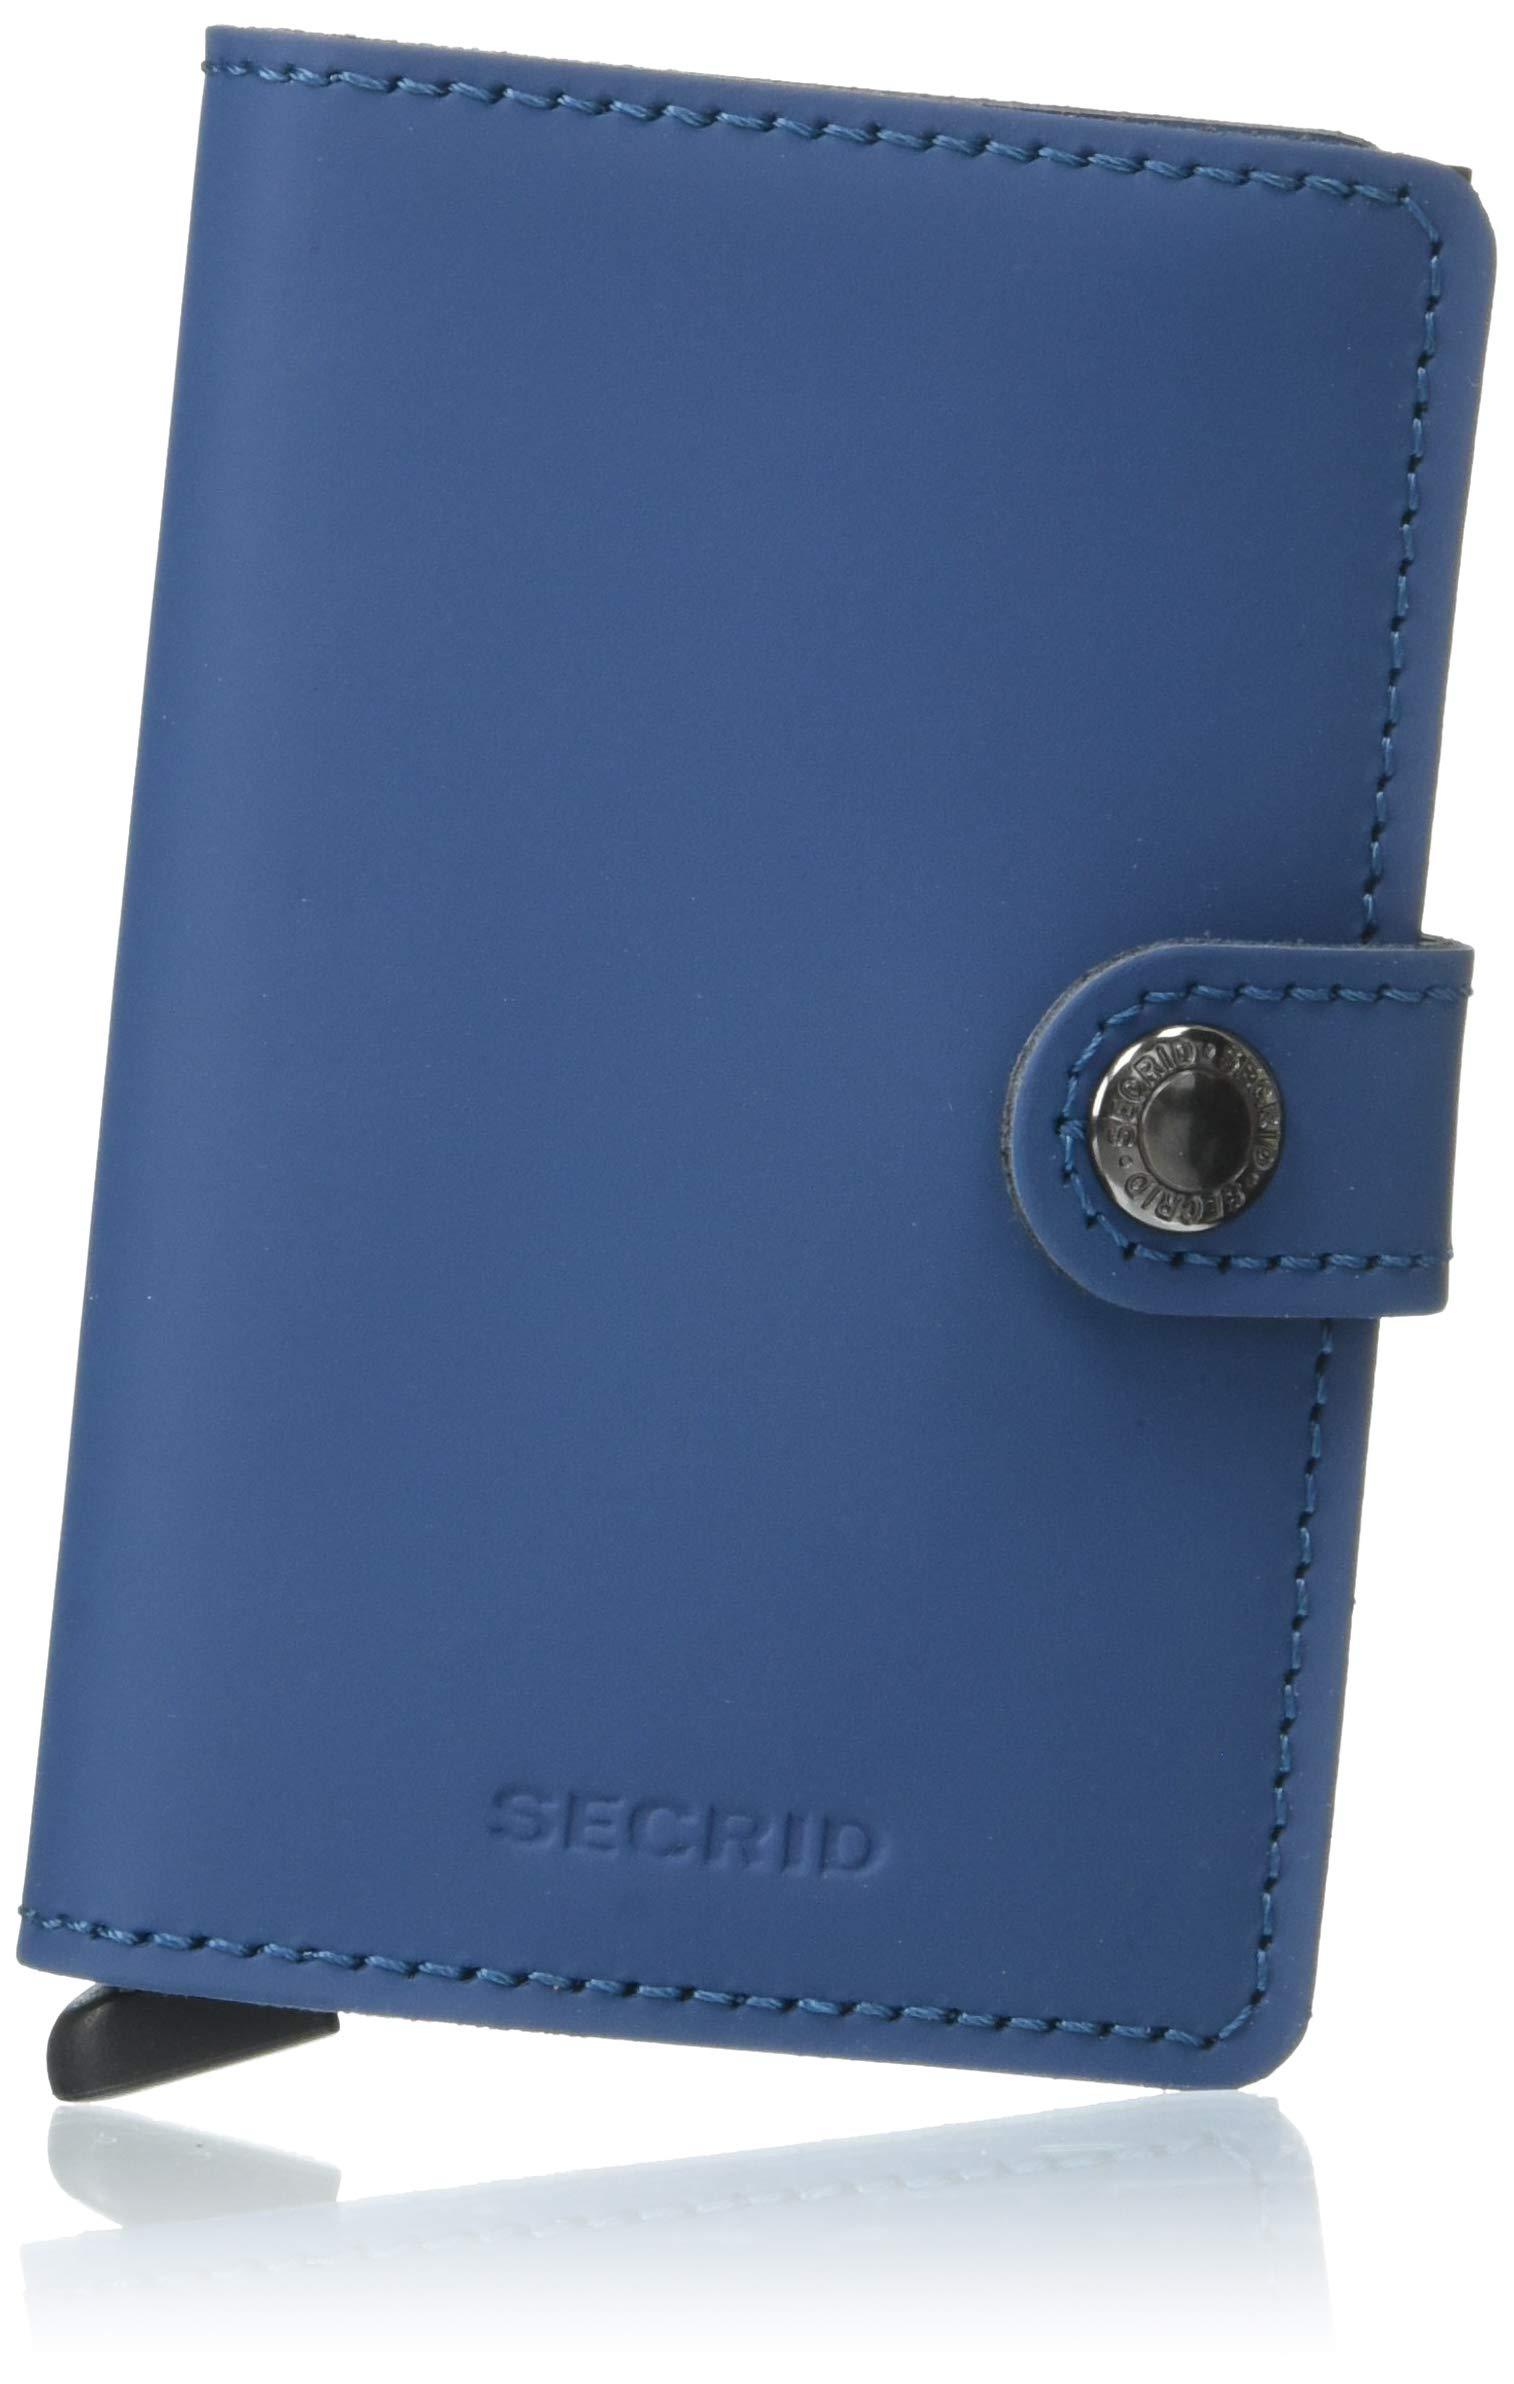 Secrid Mini Wallet, Matte Petrol, Genuine Leather, RFID Safe, Holds up to 12 Cards